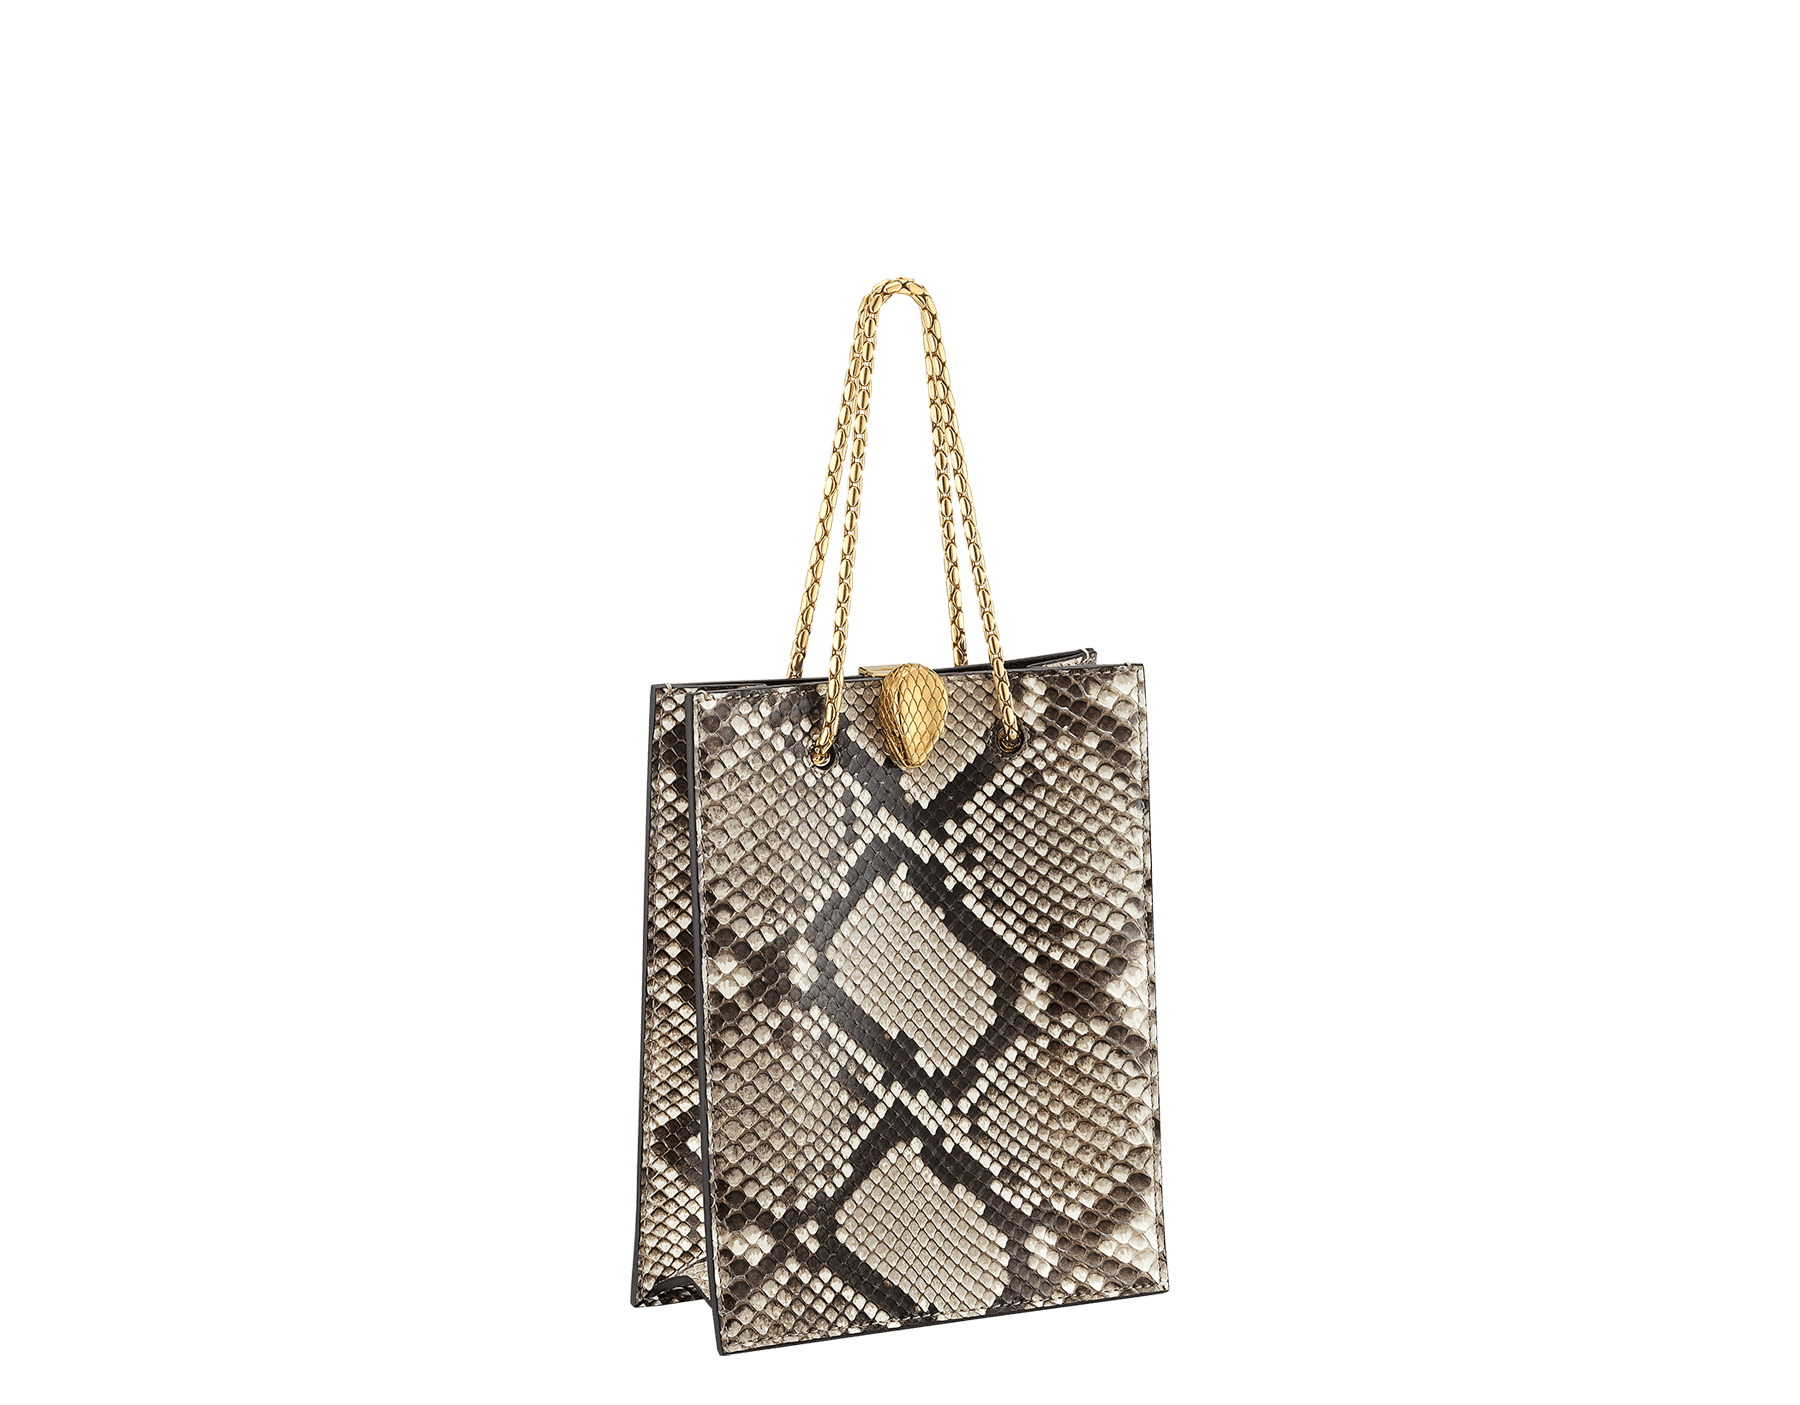 Alexander Wang x Bvlgari mini shopping tote bag in natural python skin and black calf leather. New Serpenti head closure in antique gold plated brass with tempting red enamel eyes. Limited edition. 288732 image 2